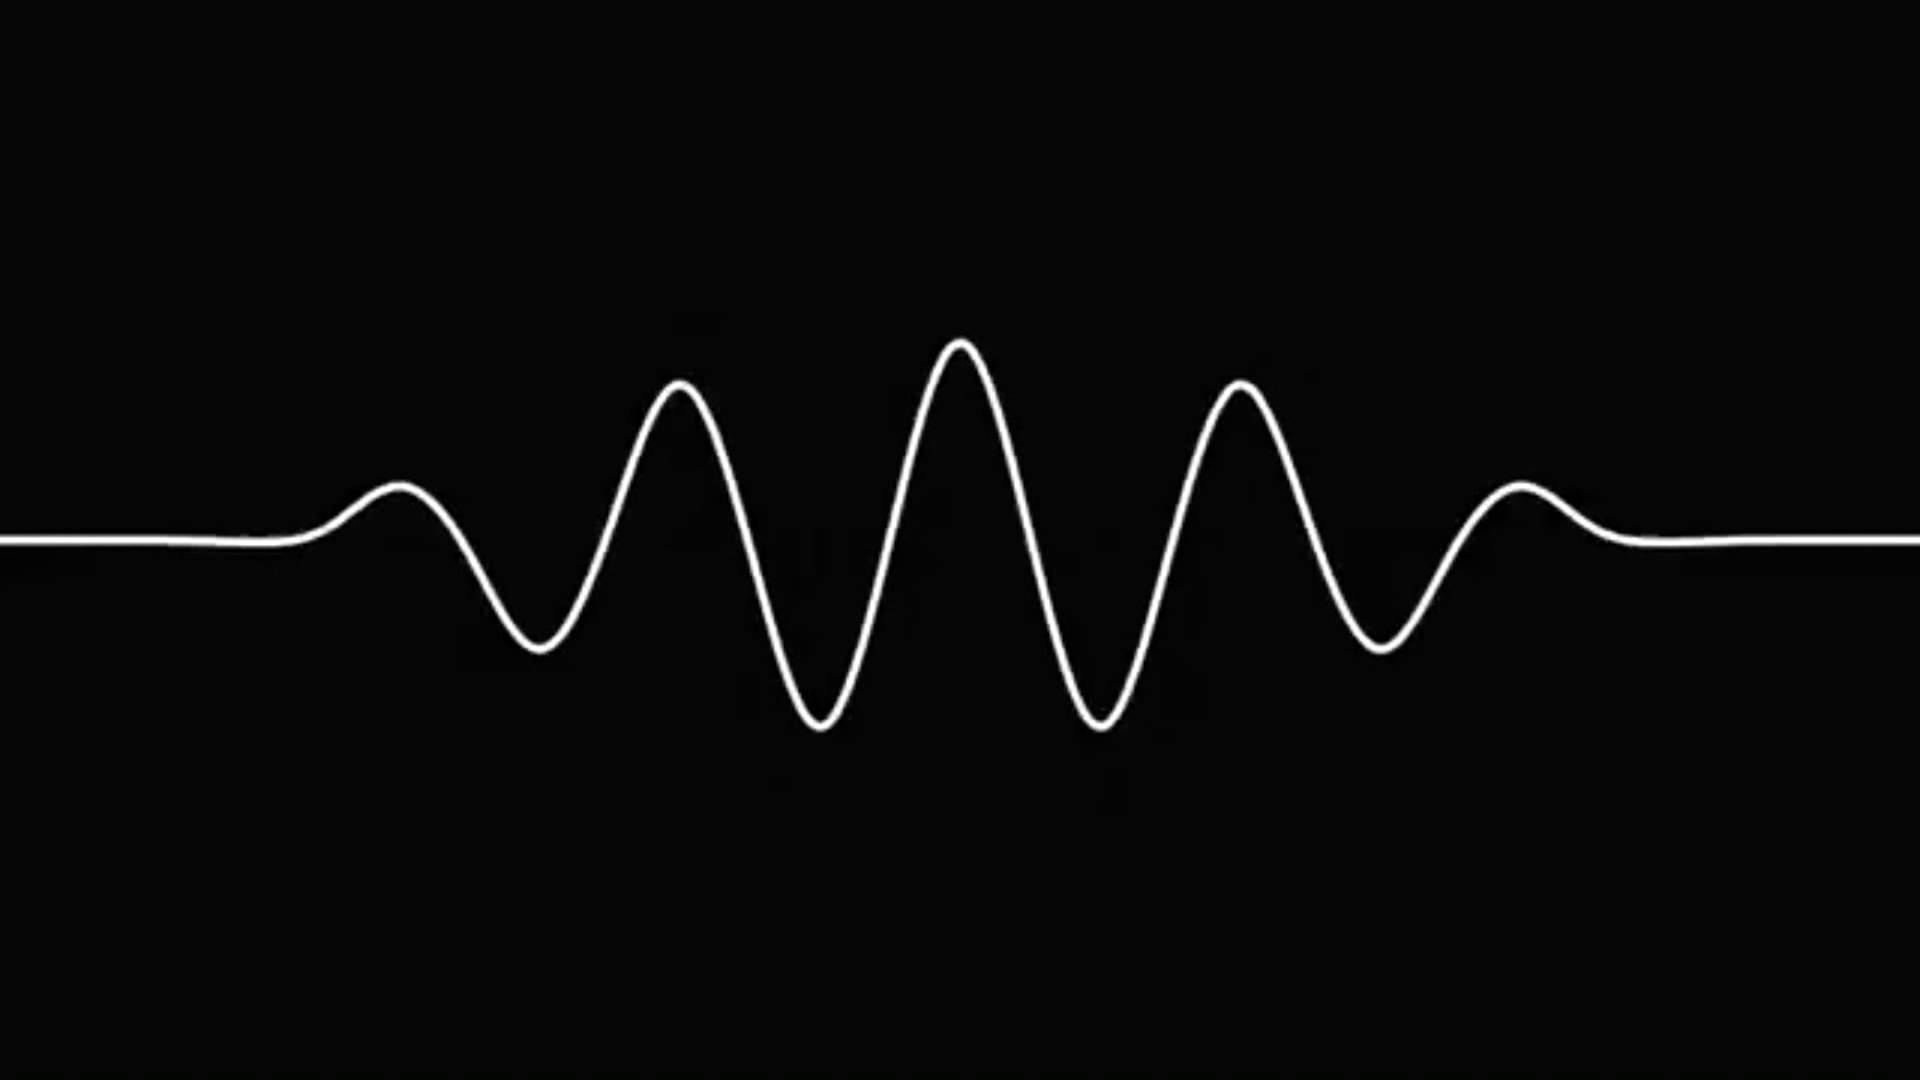 Arctic monkeys discography download torrent kickass engvegalo.